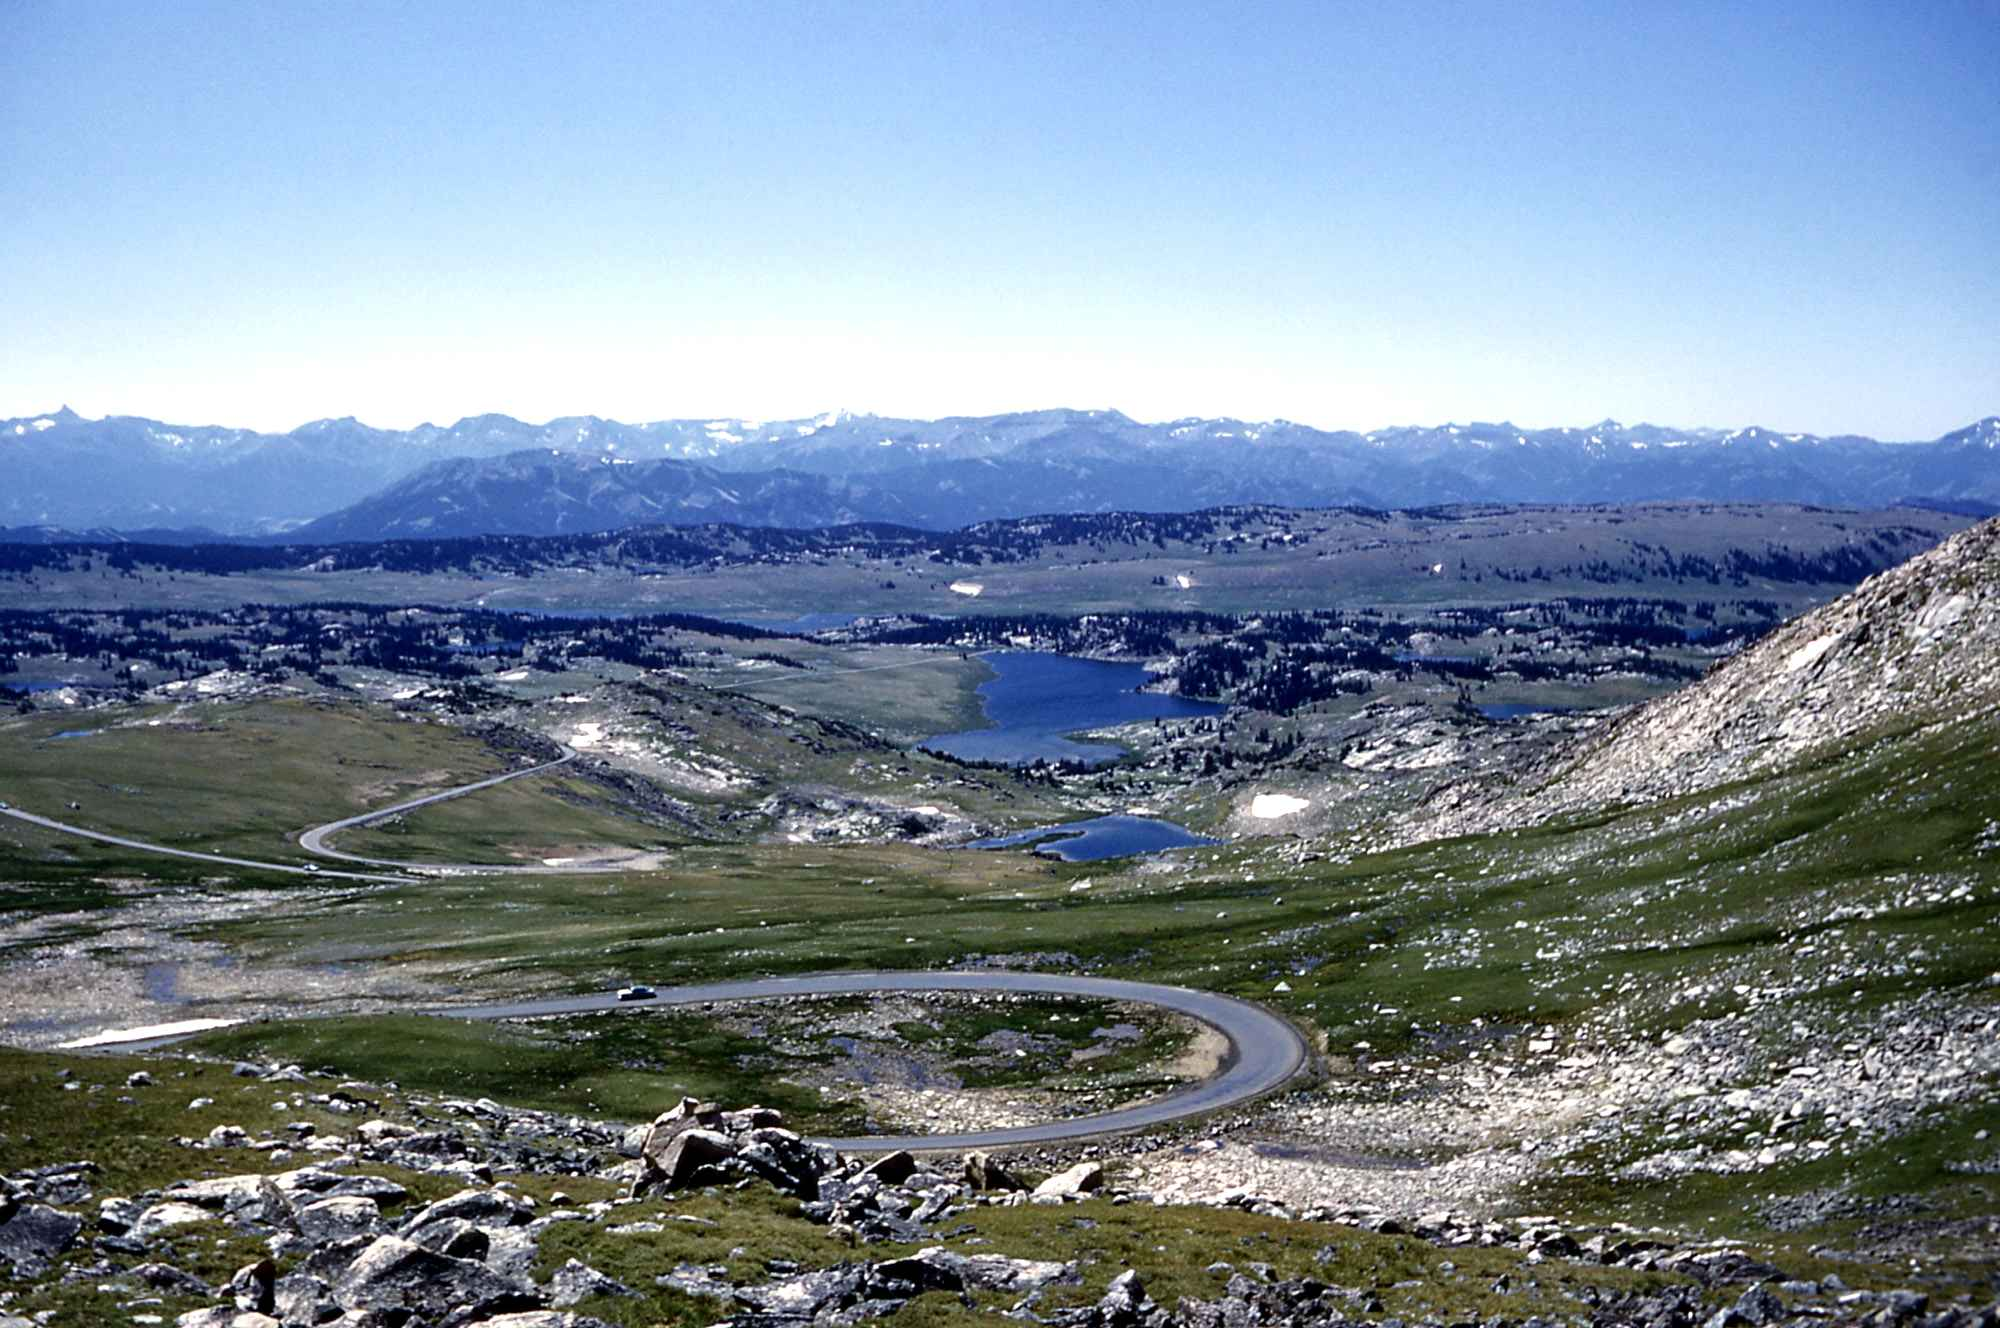 Beartooth Highway, Montana & Wyoming via By R Robinson [Public domain], via Wikimedia Commons